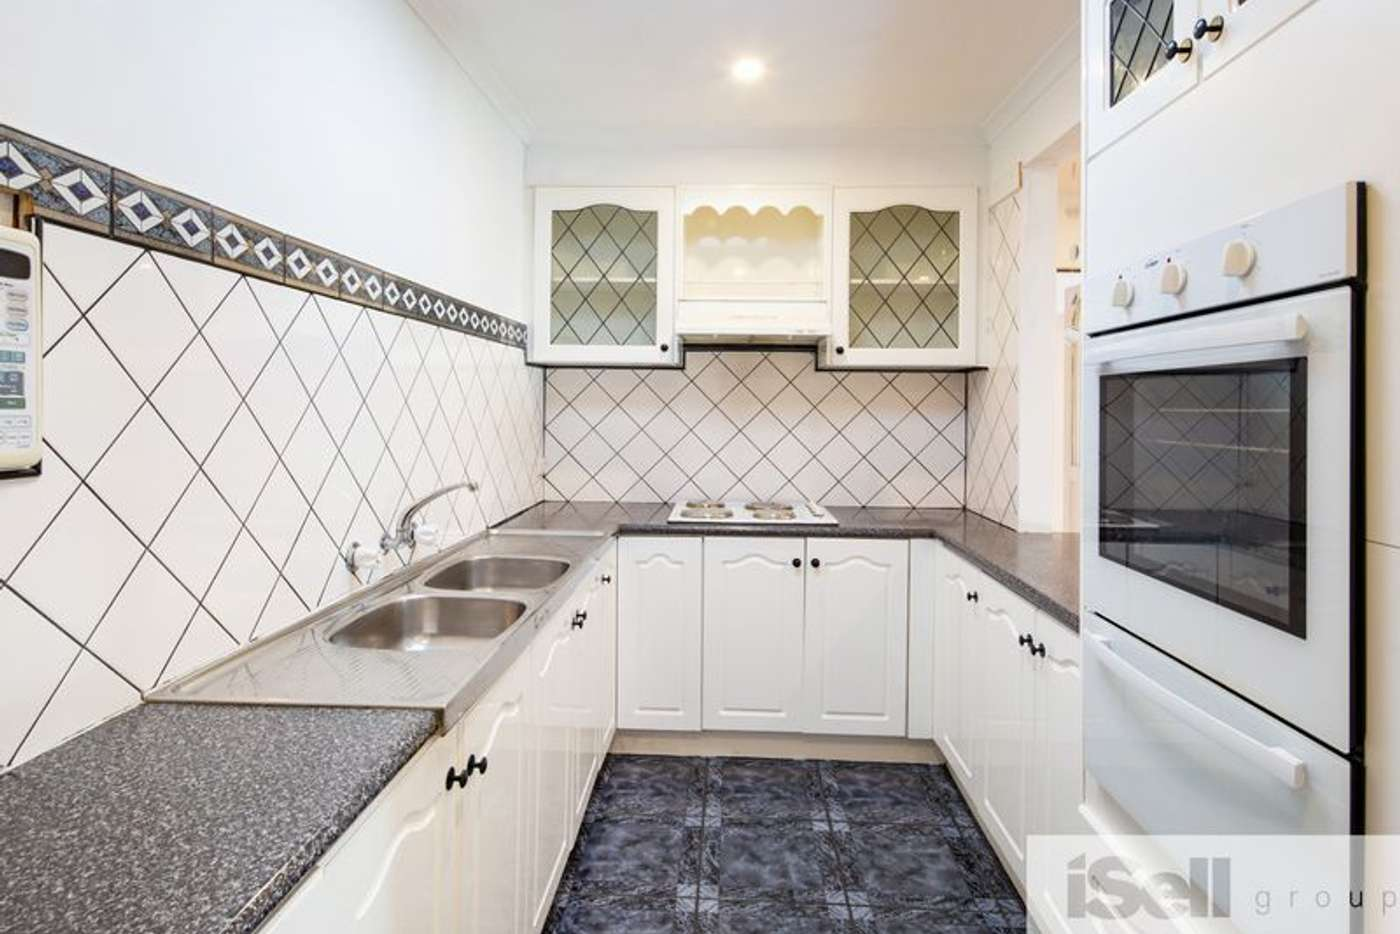 Seventh view of Homely house listing, 85 Kingsclere Avenue, Keysborough VIC 3173